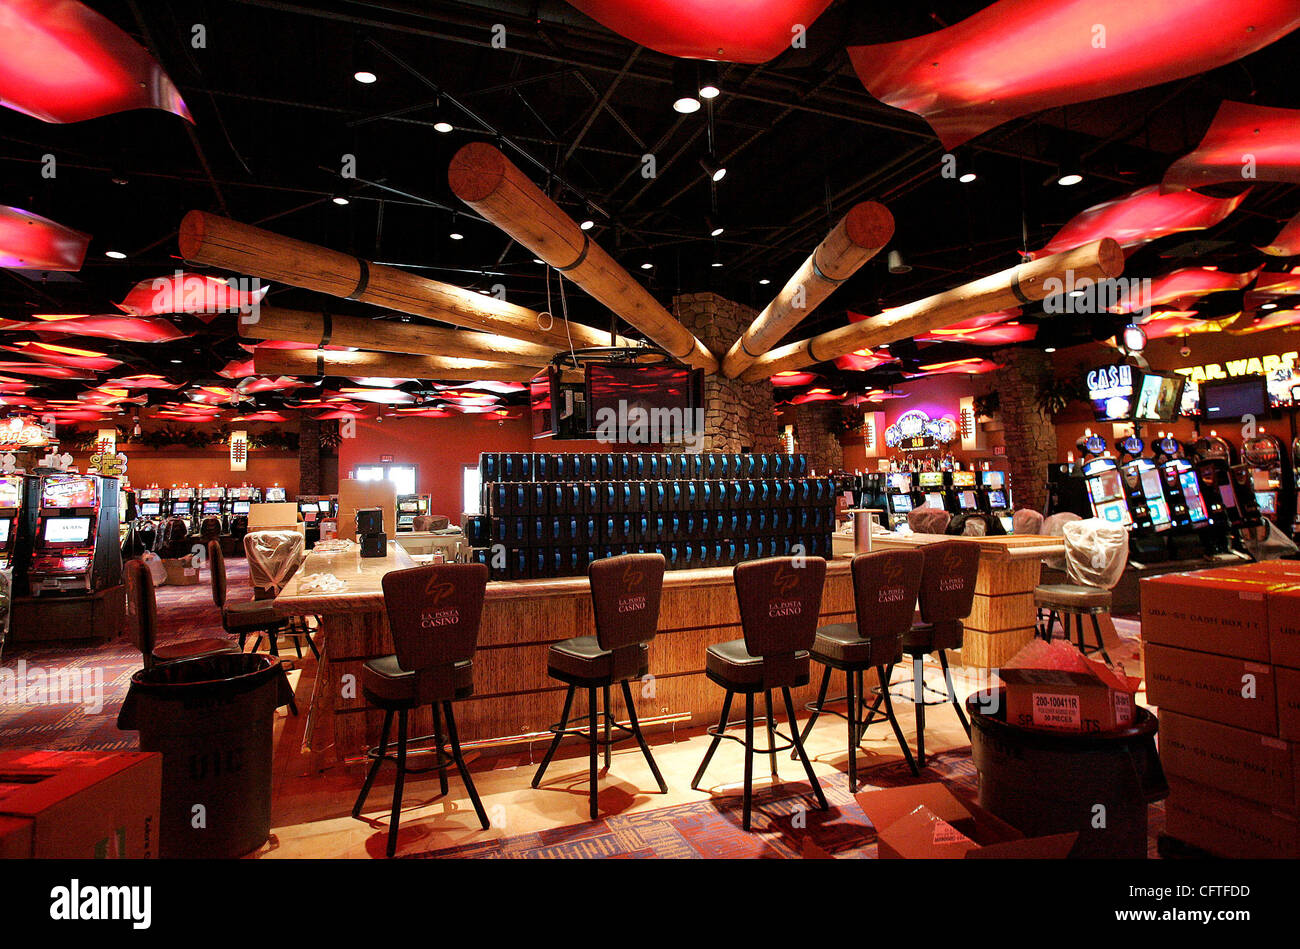 By cal casino diego near san delaware park casino $2 blackjack